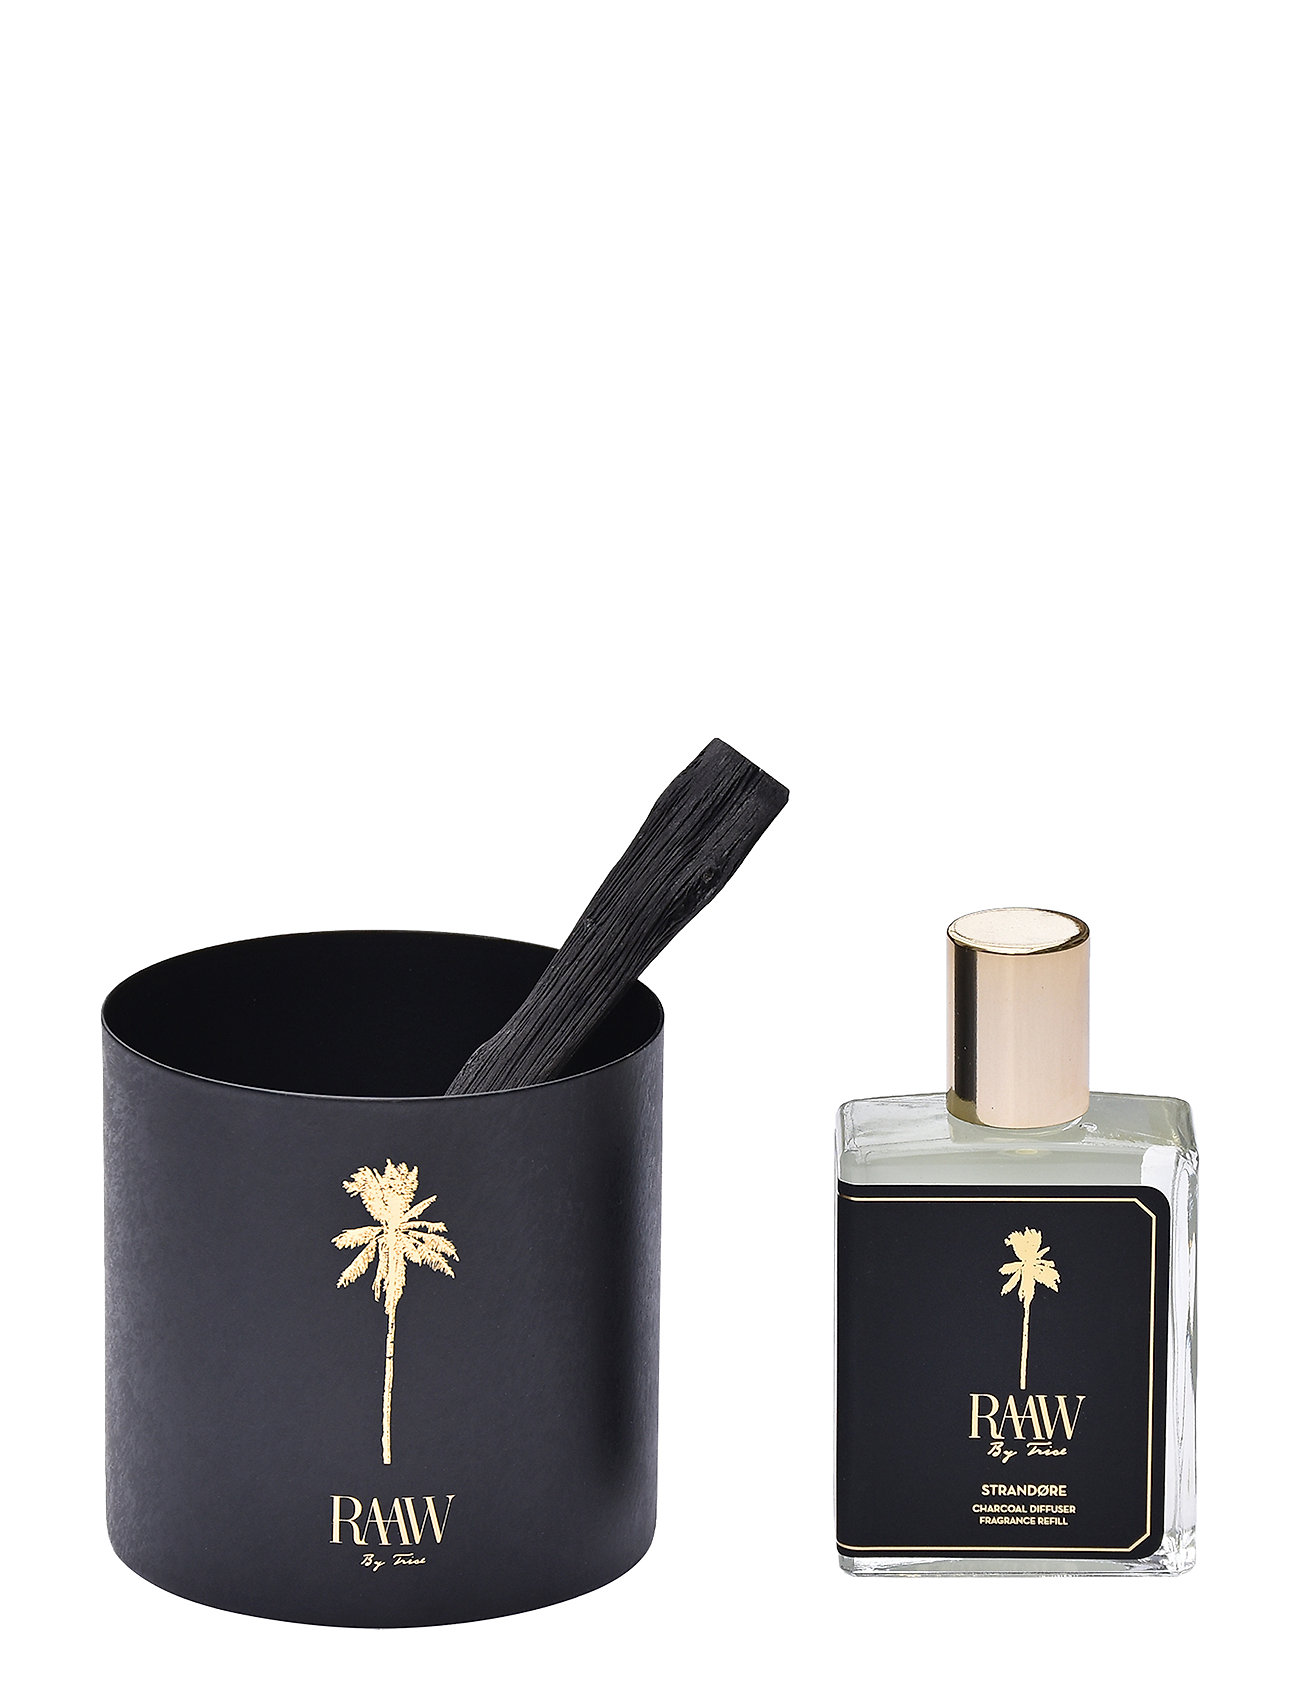 Raaw by Trice Strandoere Charcoal Diffuser - NO COLOUR